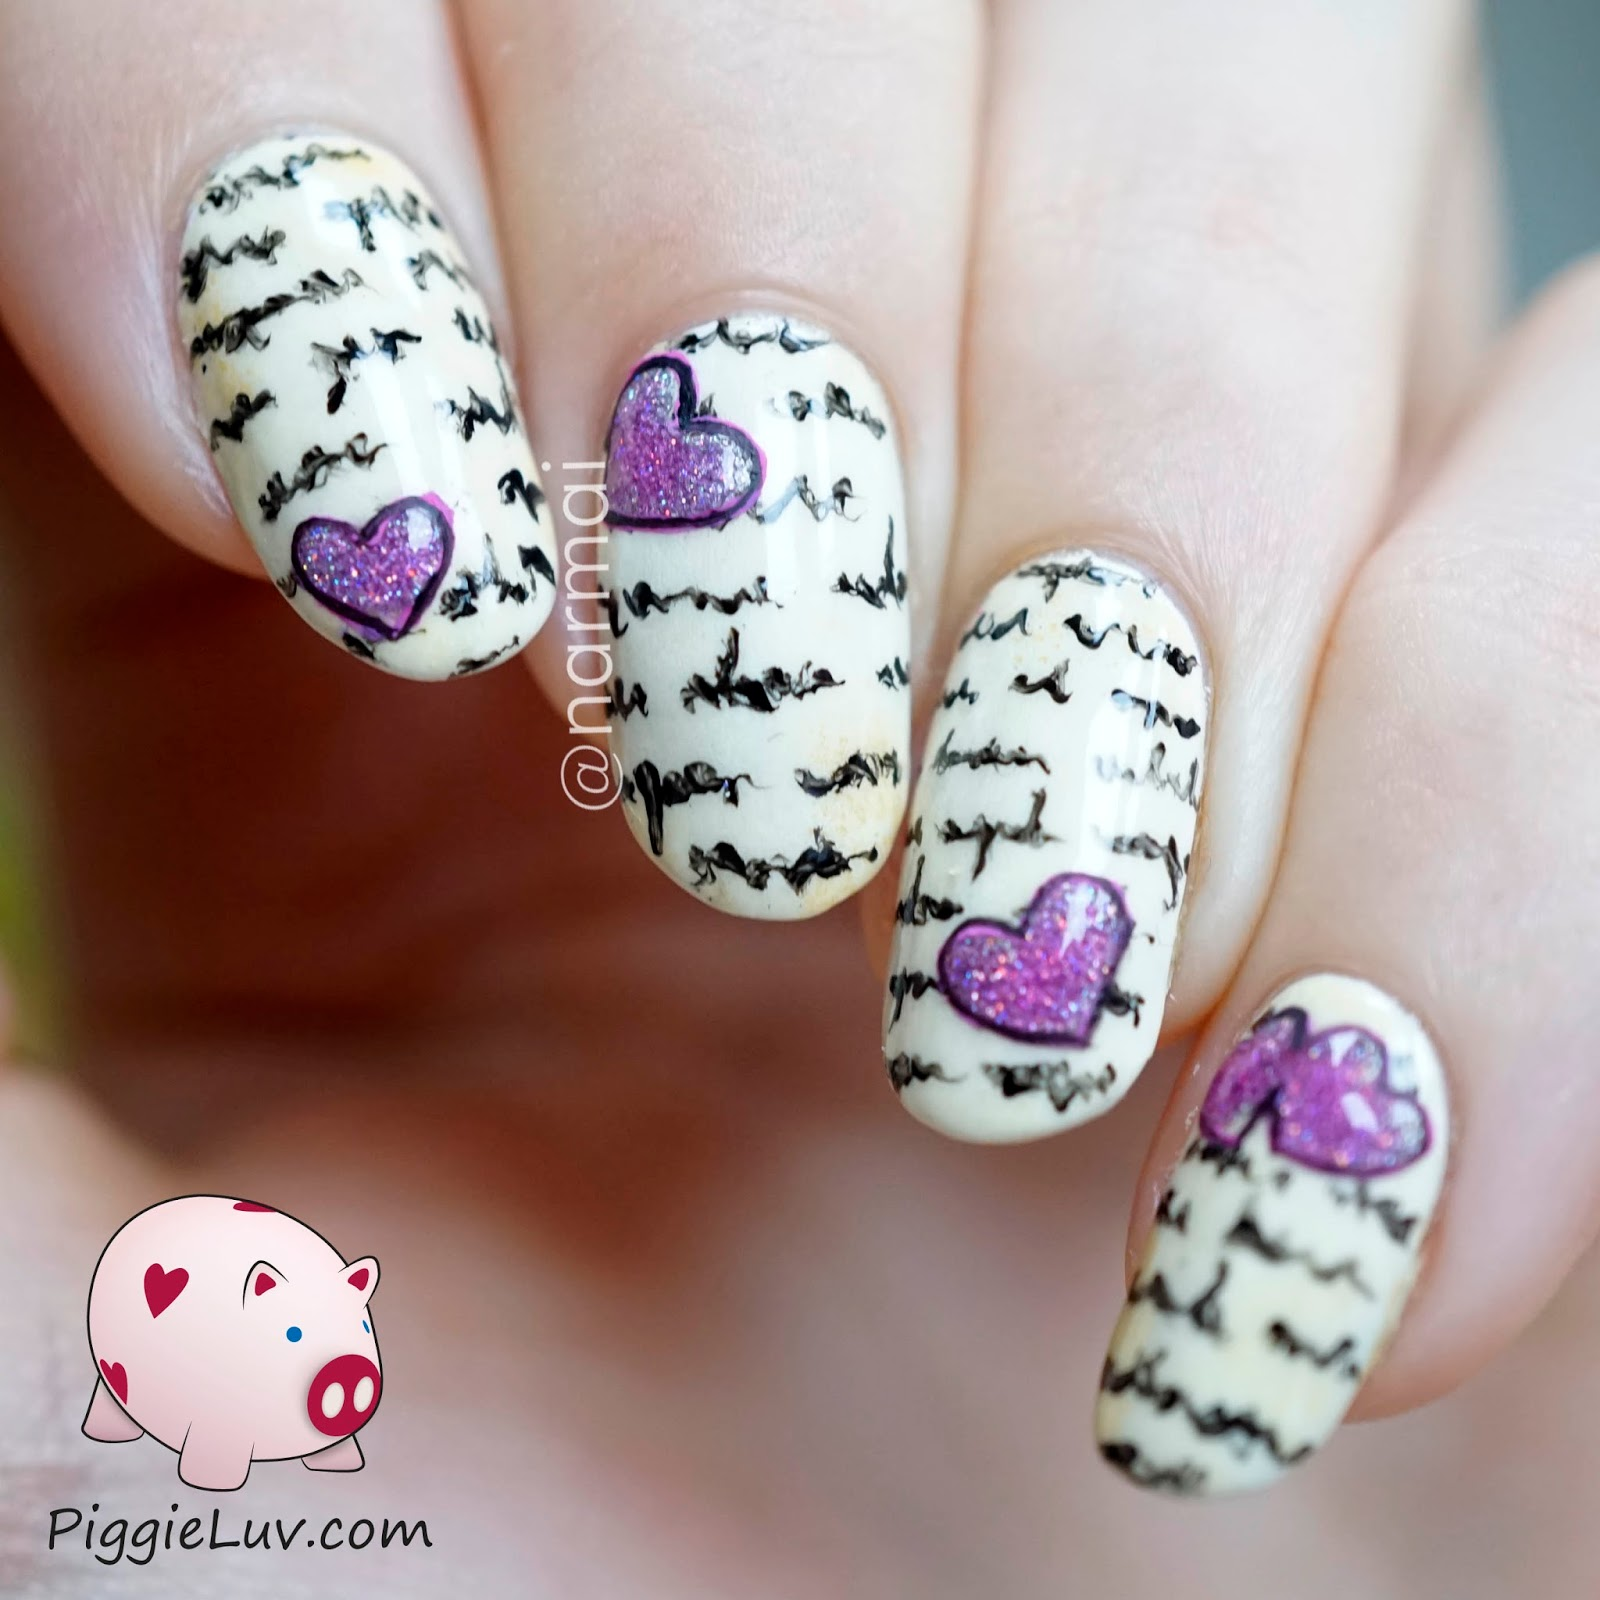 Piggieluv love letter nail art hpb valentines day linkup love letter nail art hpb valentines day linkup prinsesfo Image collections